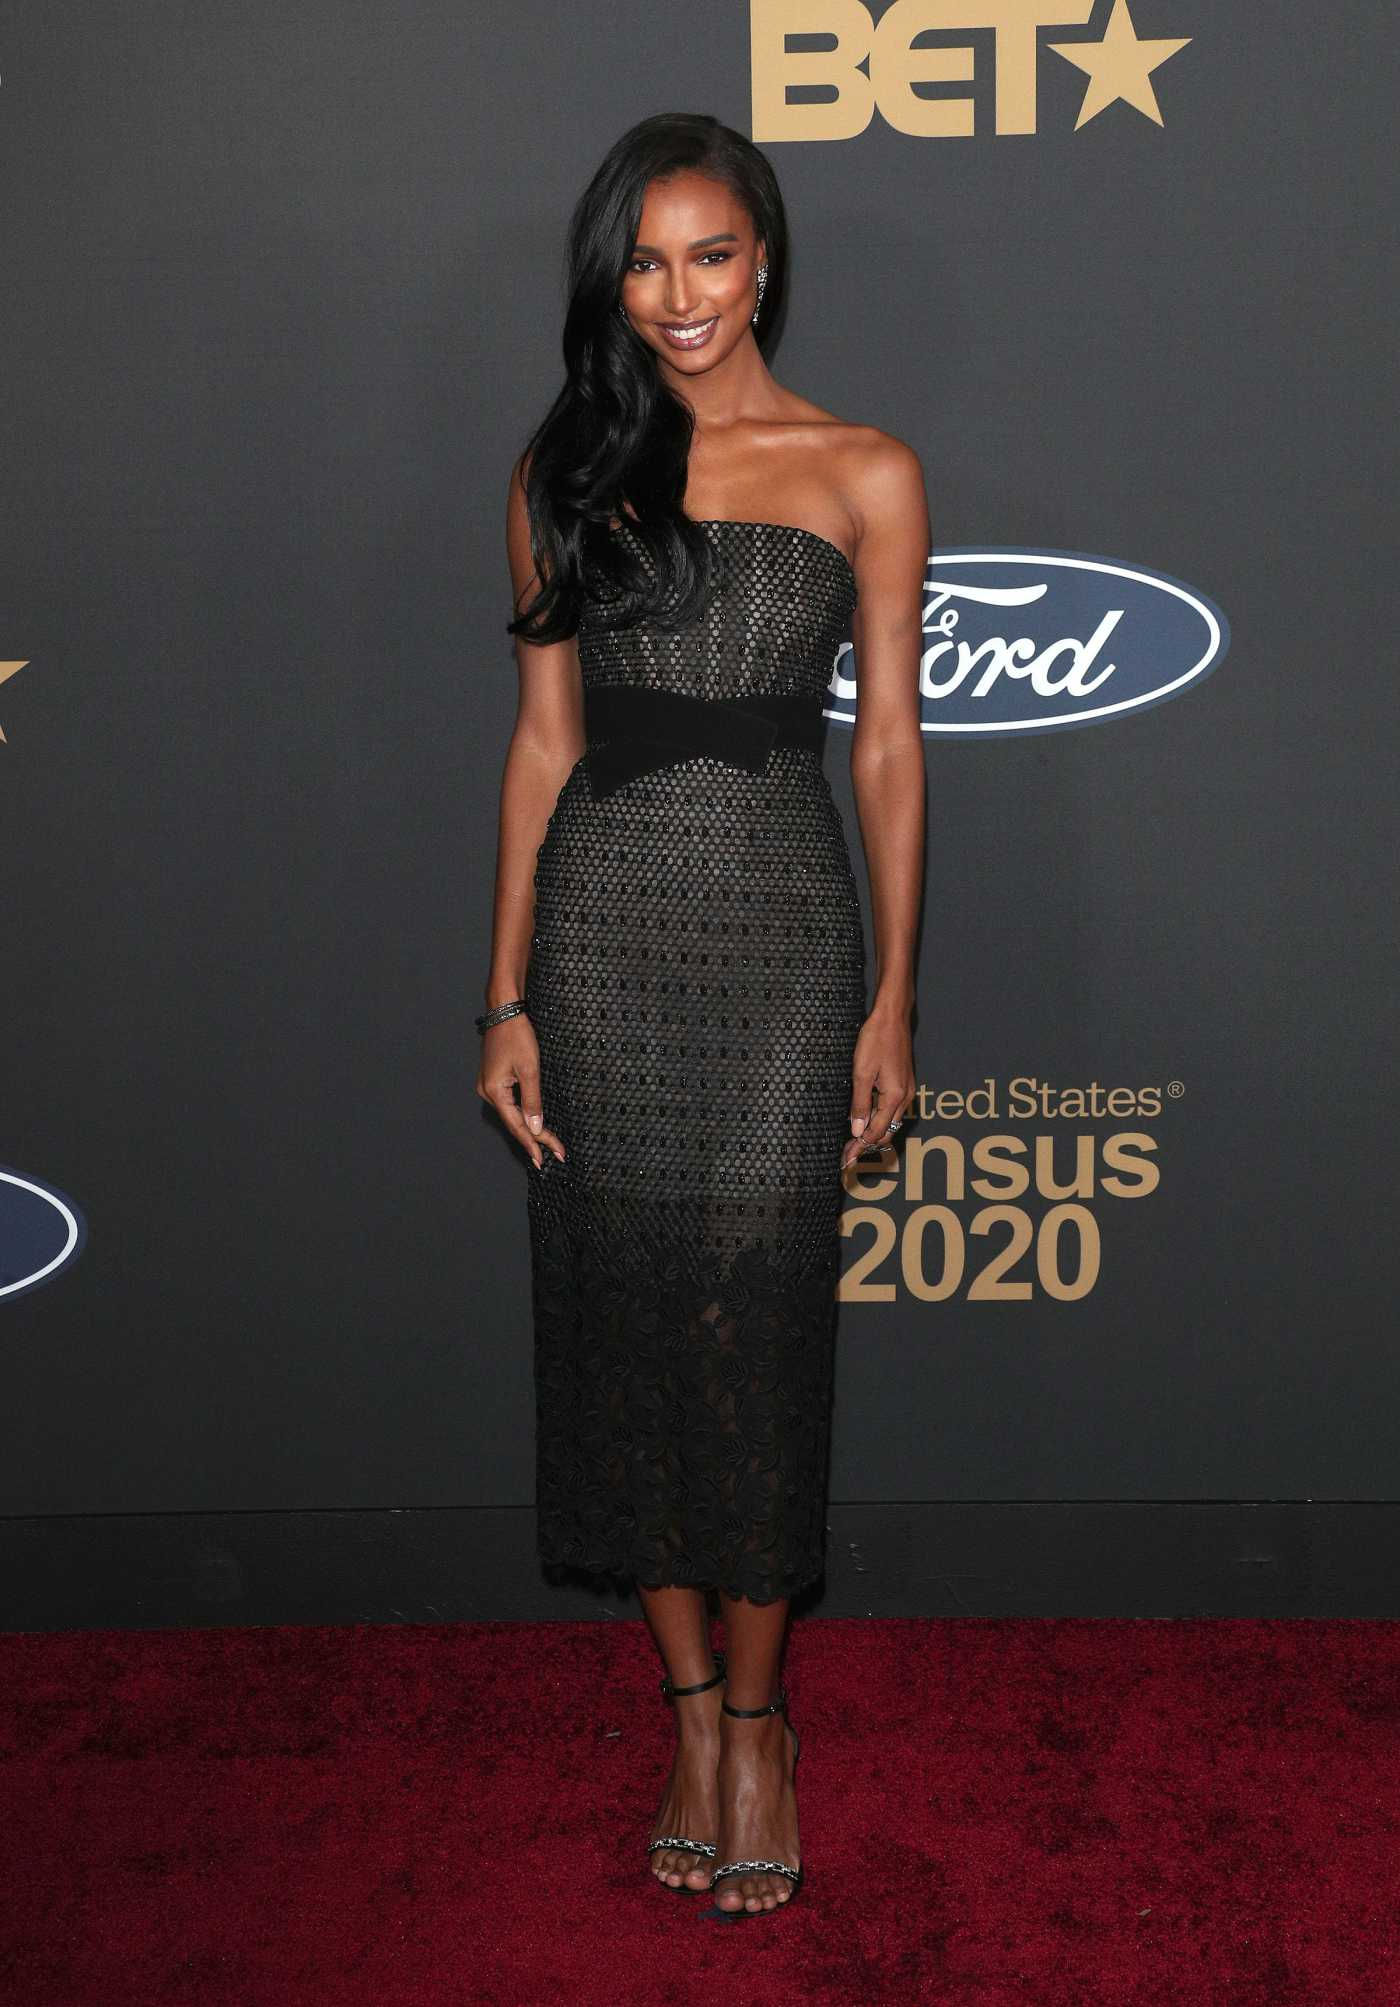 Jasmine Tookes Attends the 51st NAACP Image Awards at Pasadena Civic Auditorium in Pasadena 02/22/2020